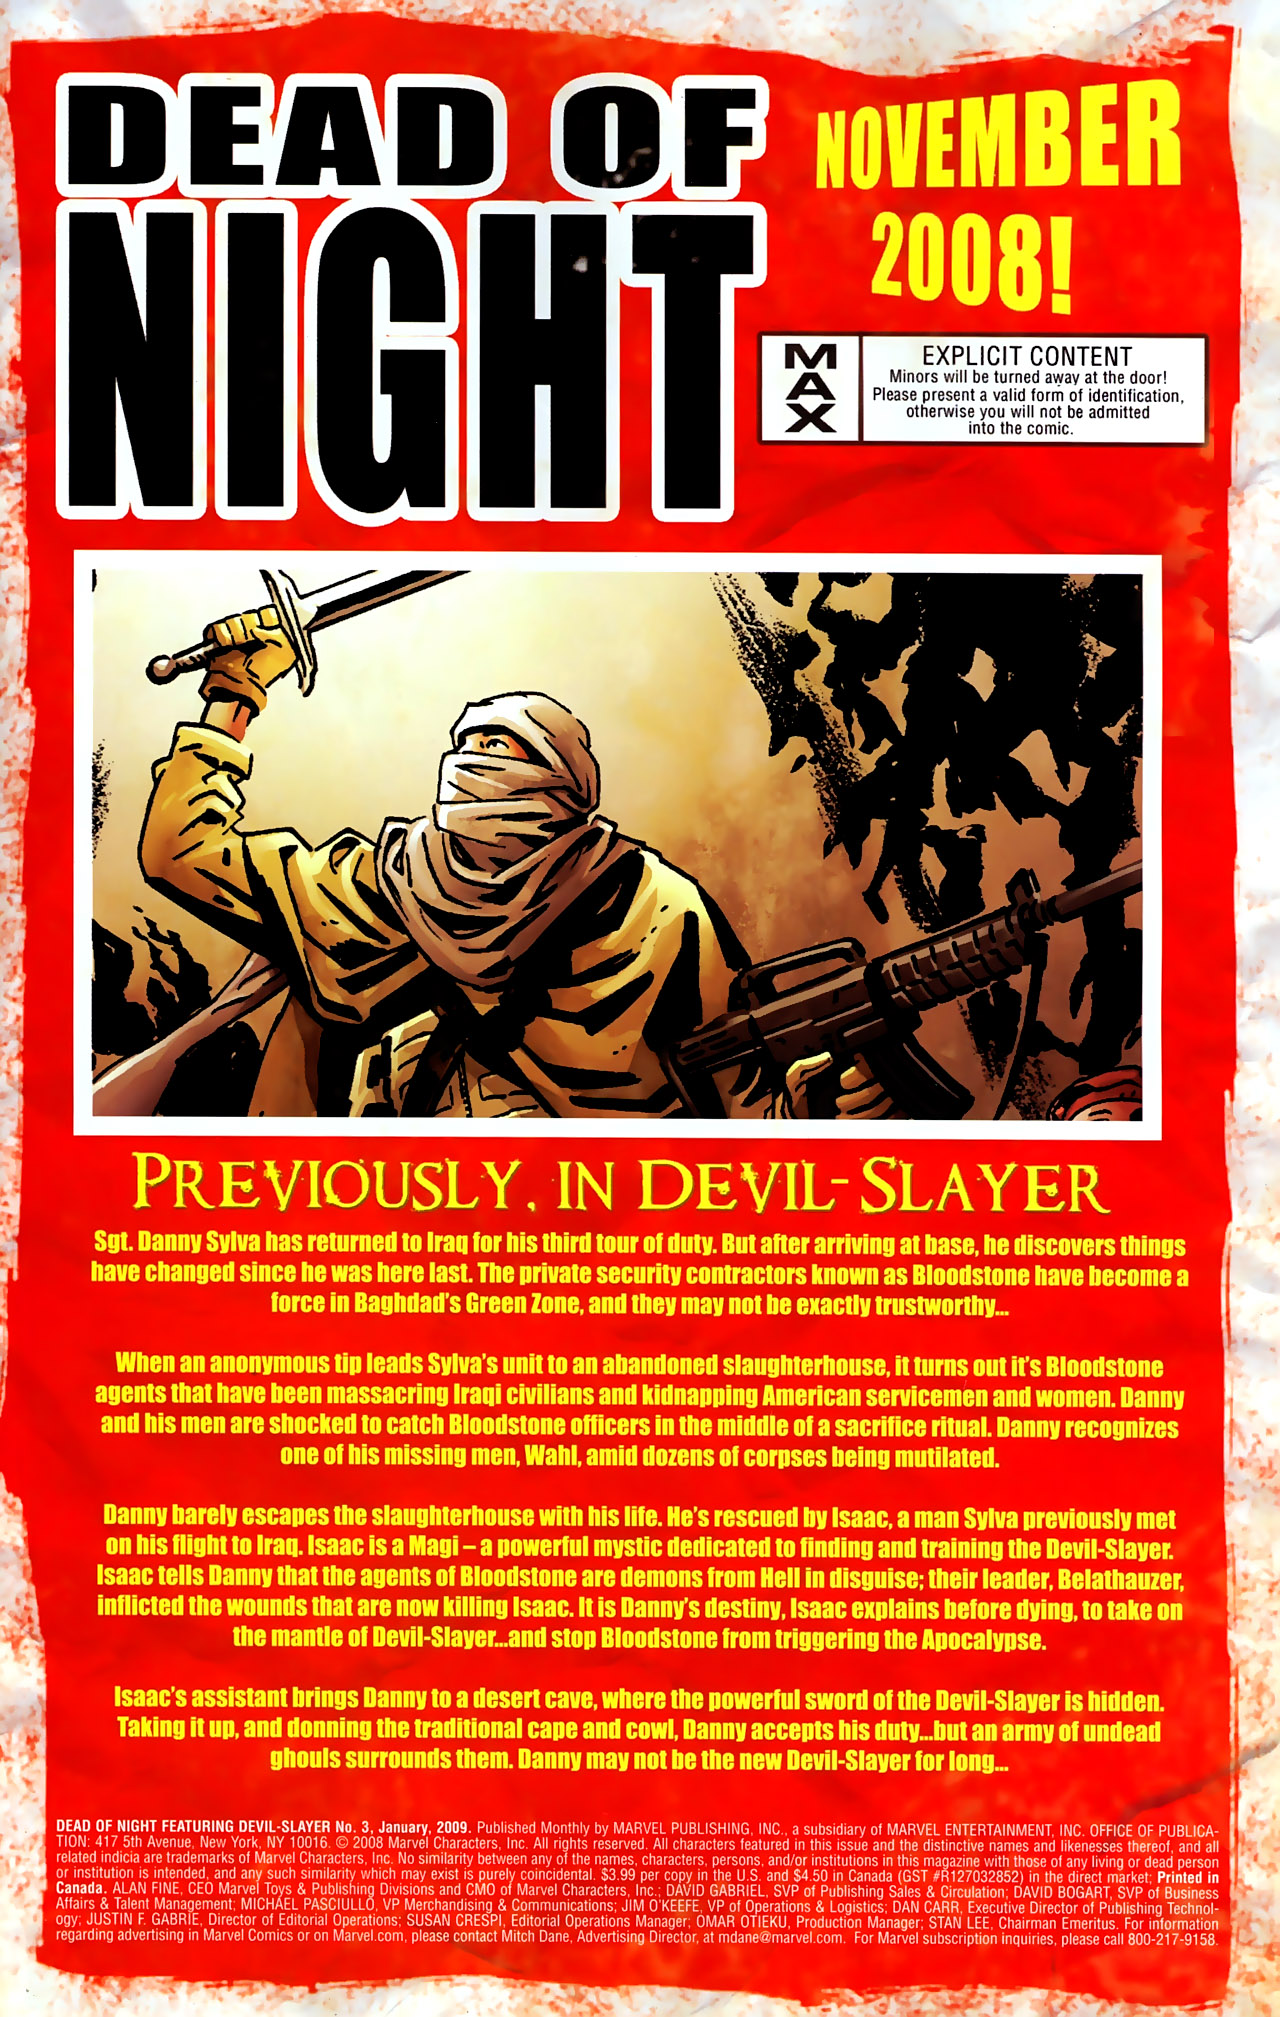 Read online Dead of Night Featuring Devil-Slayer comic -  Issue #3 - 2